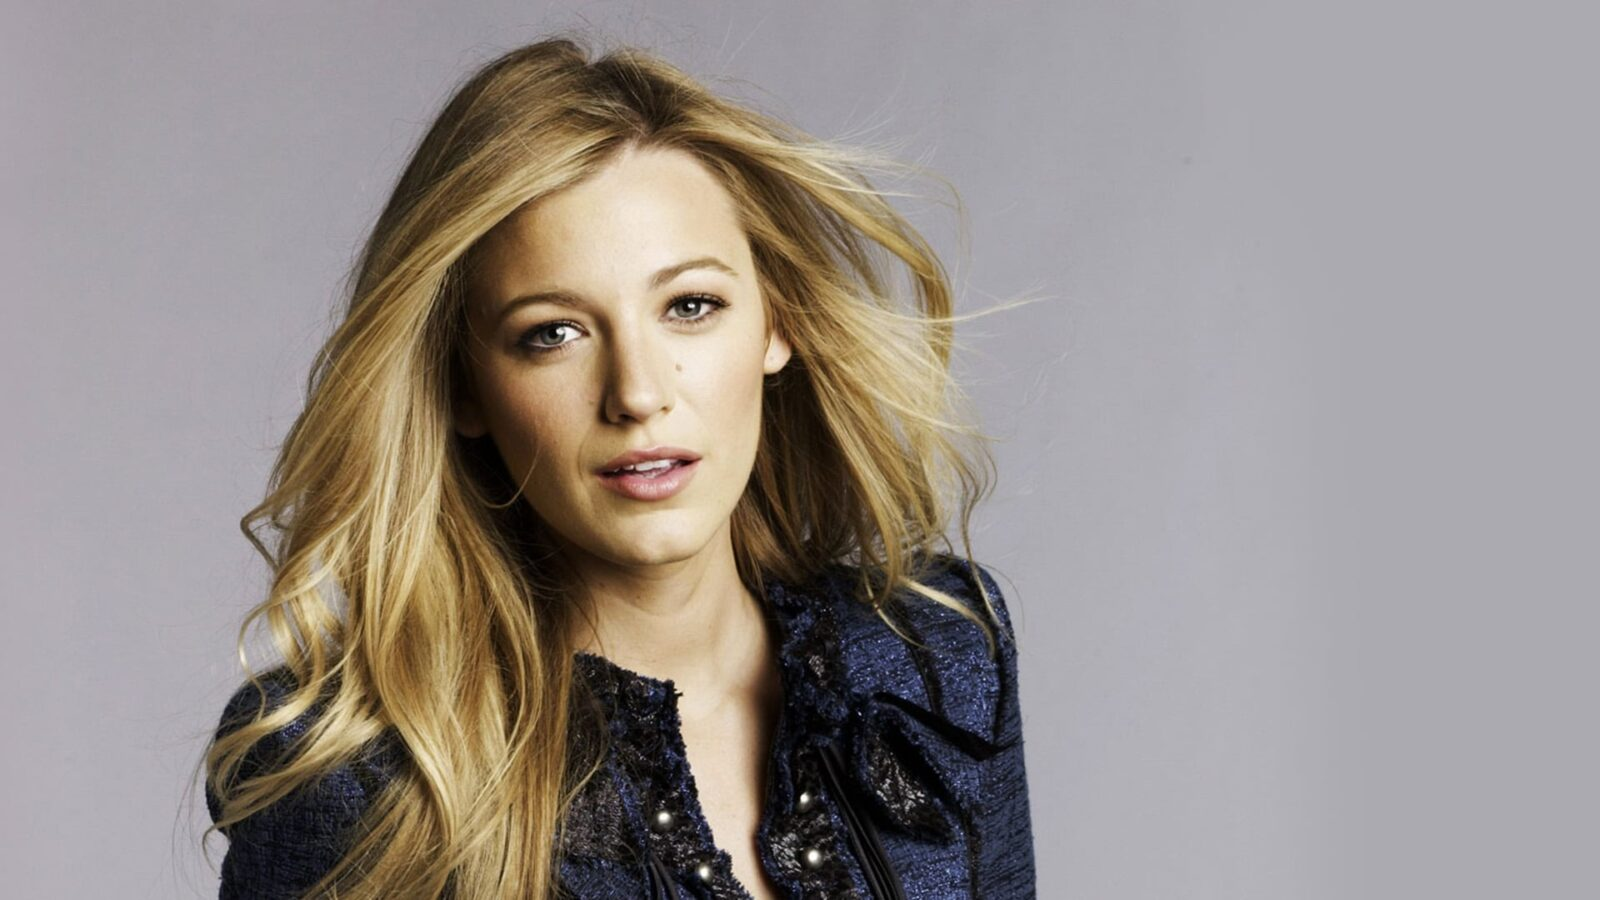 Blake Lively Wallpapers High Quality Download